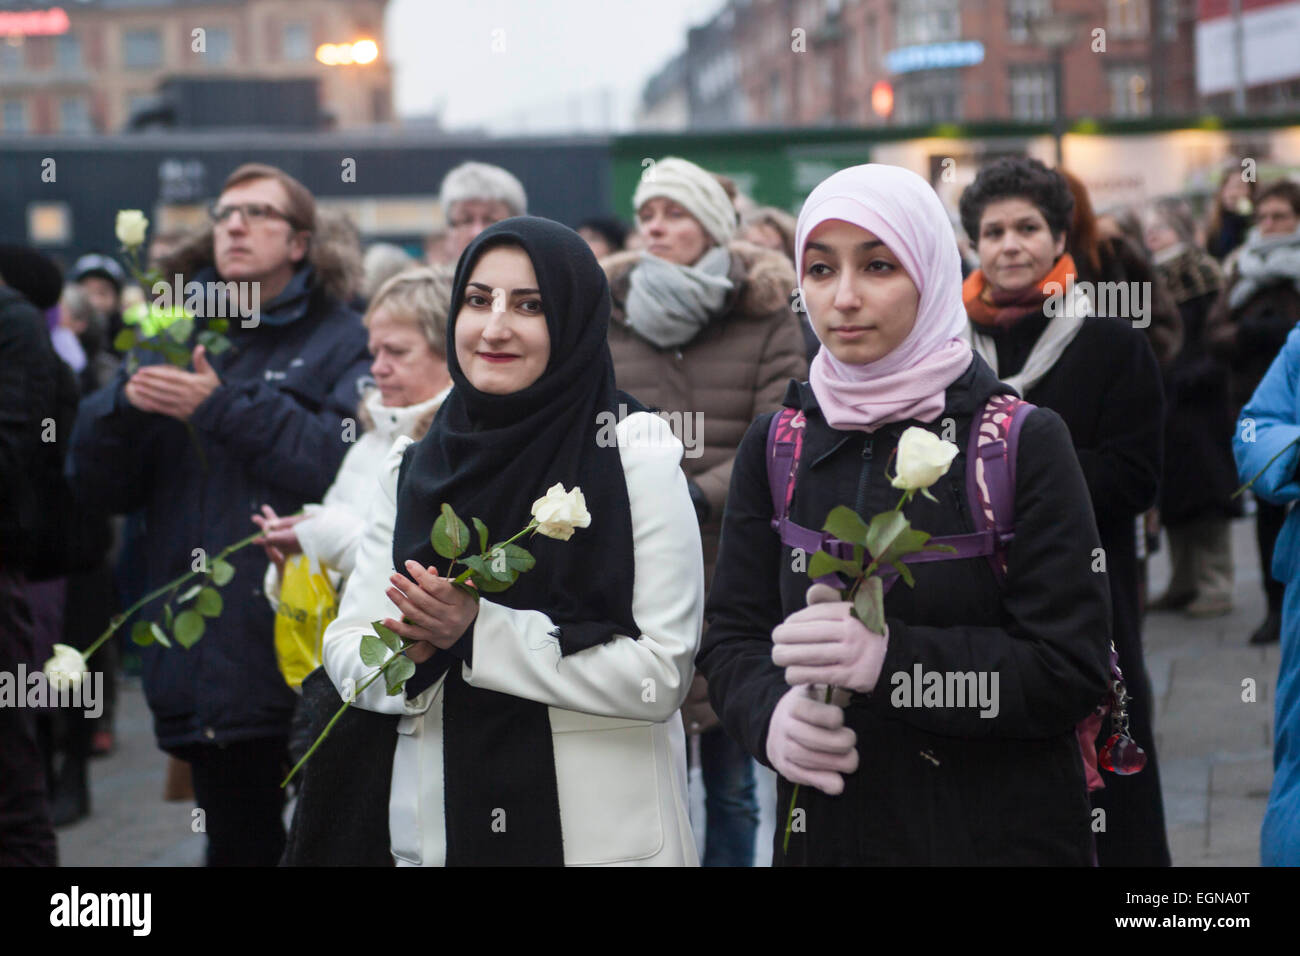 denmark muslim girl personals That's what you can expect when you date a muslim girl who carries her culture with her what men don't get about dating muslim women.